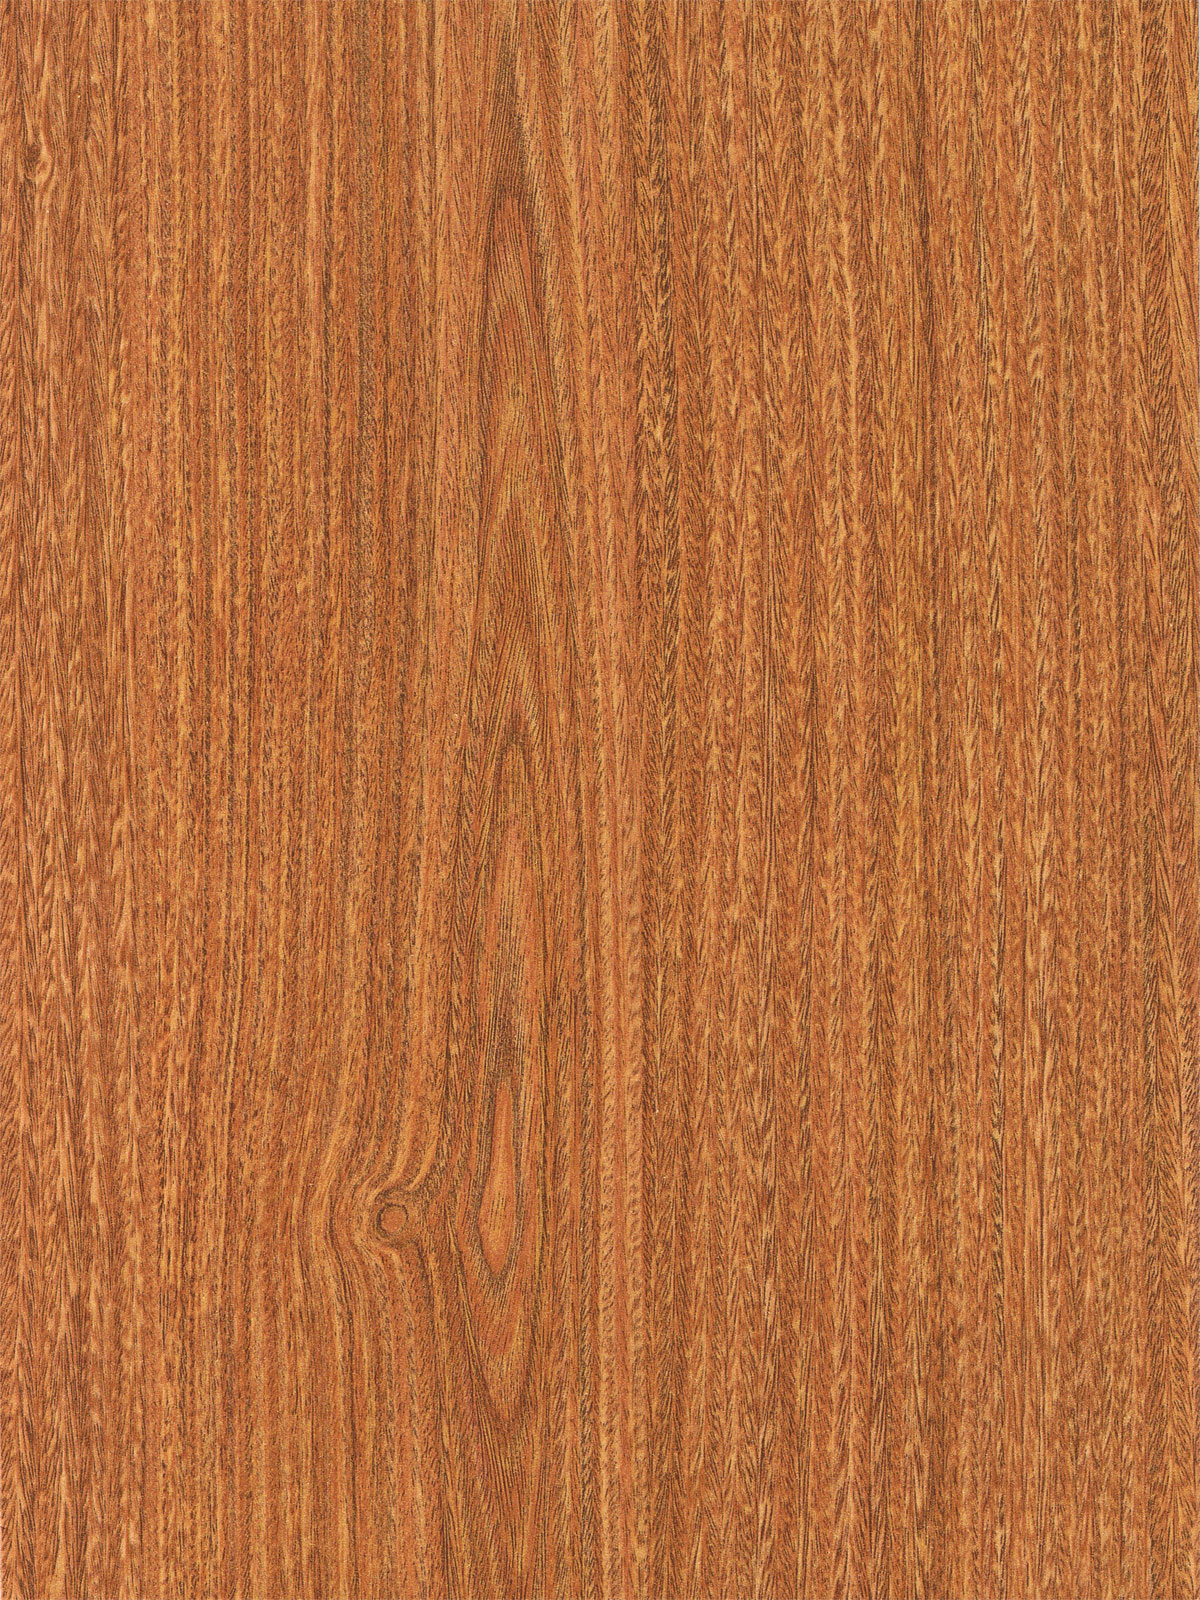 Welcome to china laminate flooring 28 images welcome for Laminate flooring manufacturers